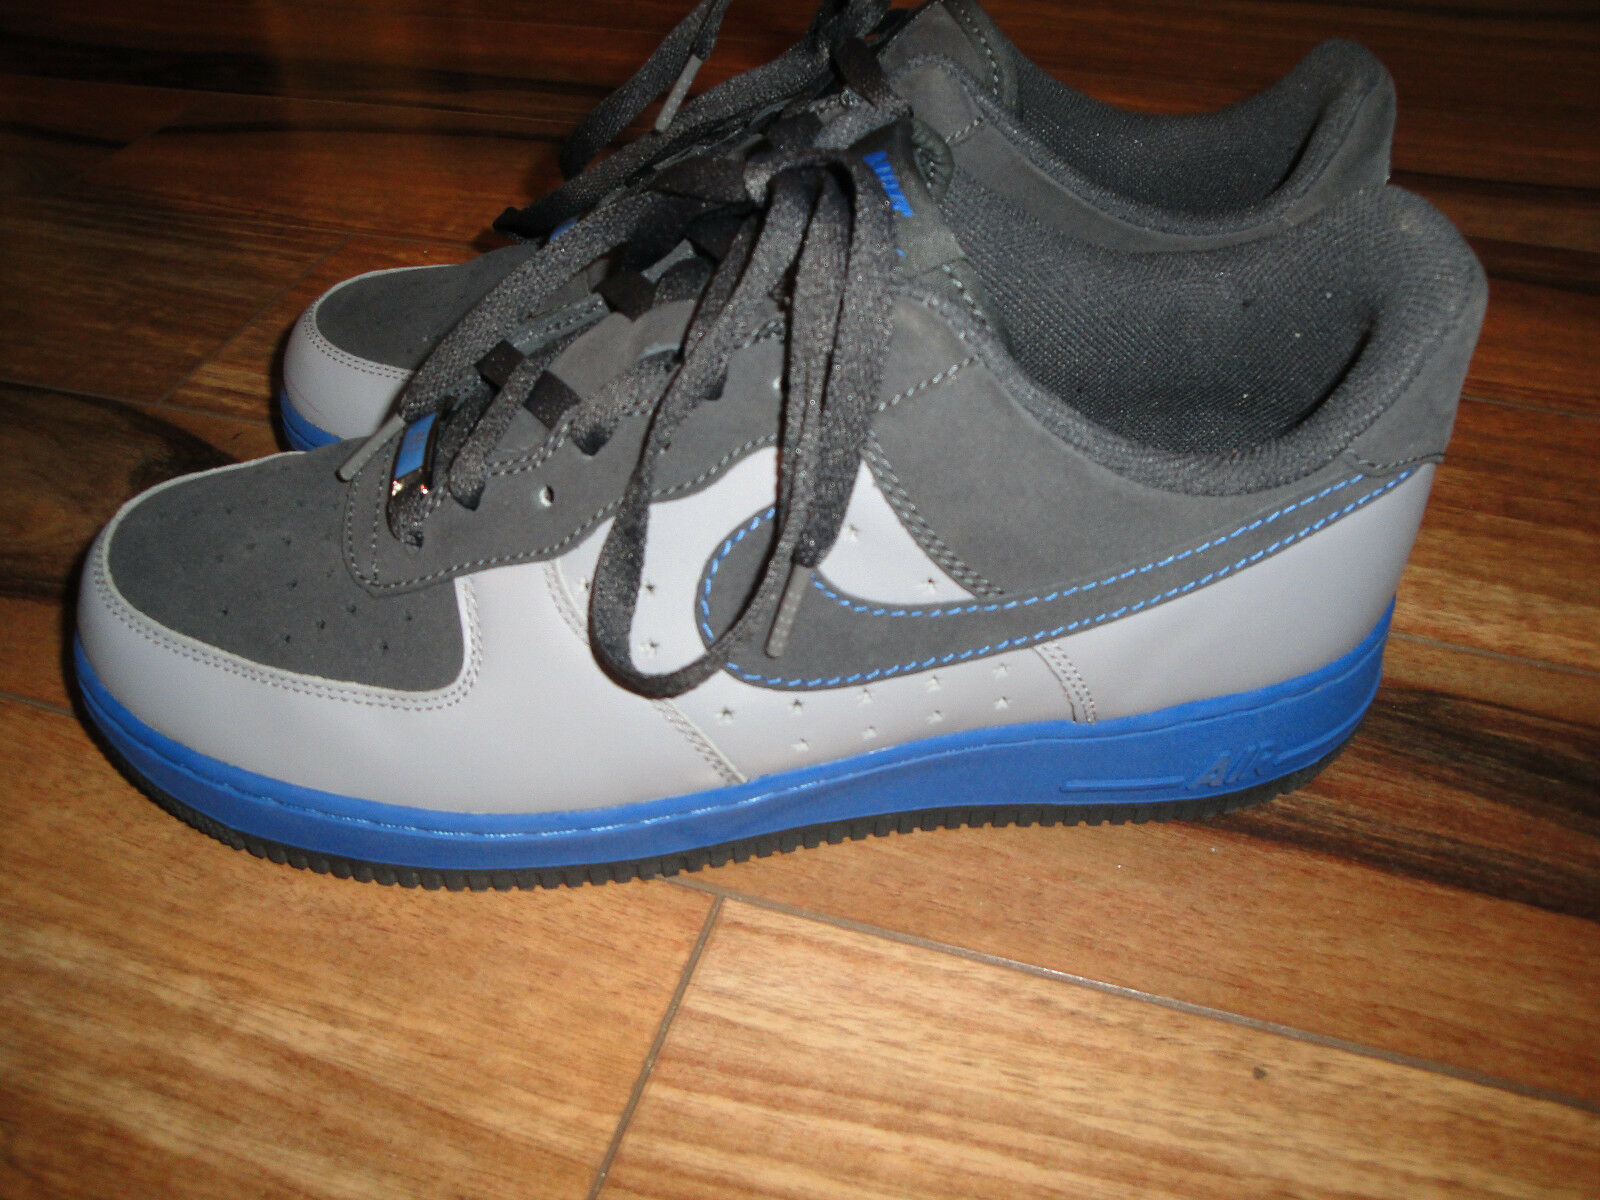 Nike Air Force 1 Low Taille 10.5 style  317295-001